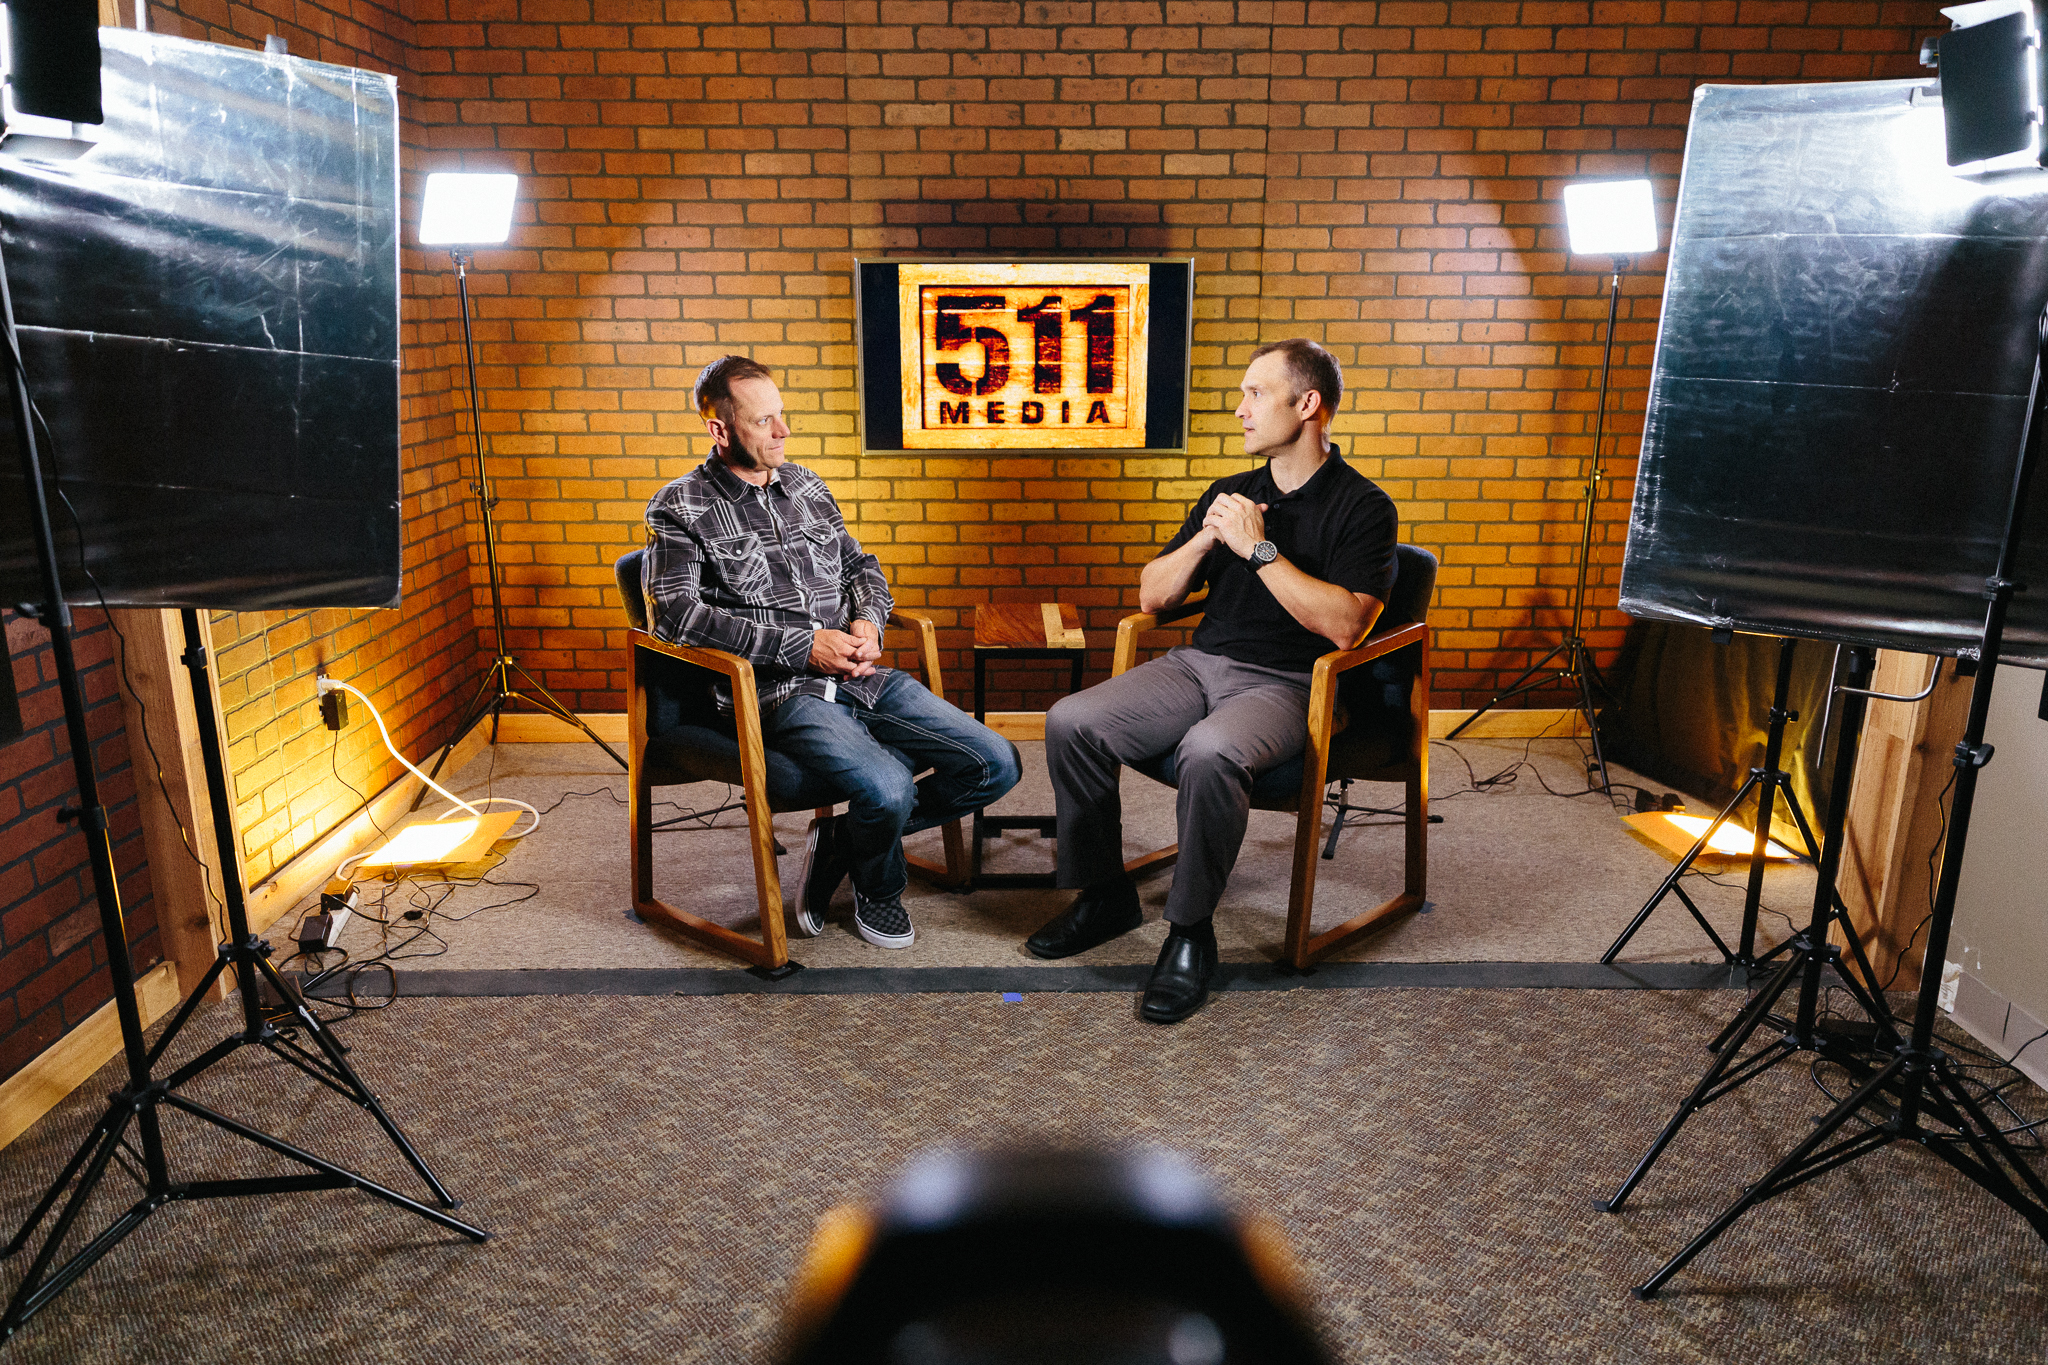 VIDEO Production - We're set up and ready to record your video podcast, interview, client testimonial, or training video.